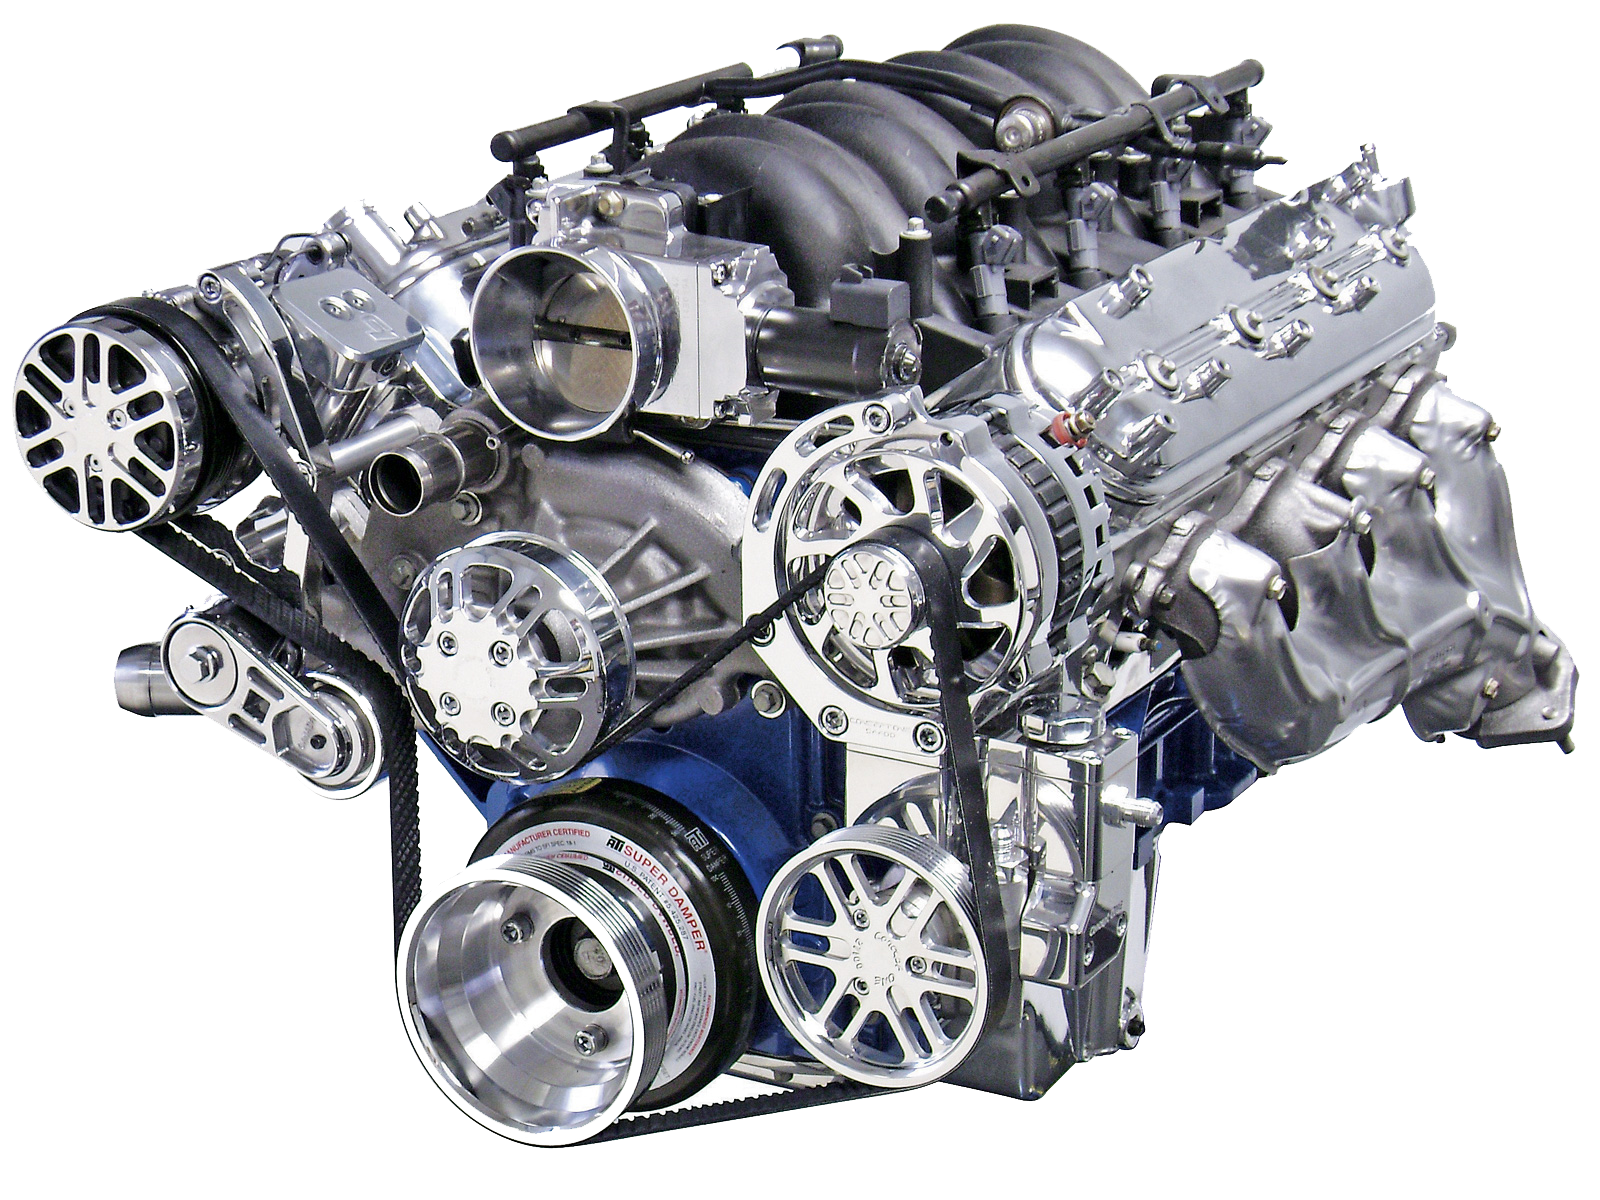 Transparent engine car. Motors png image purepng